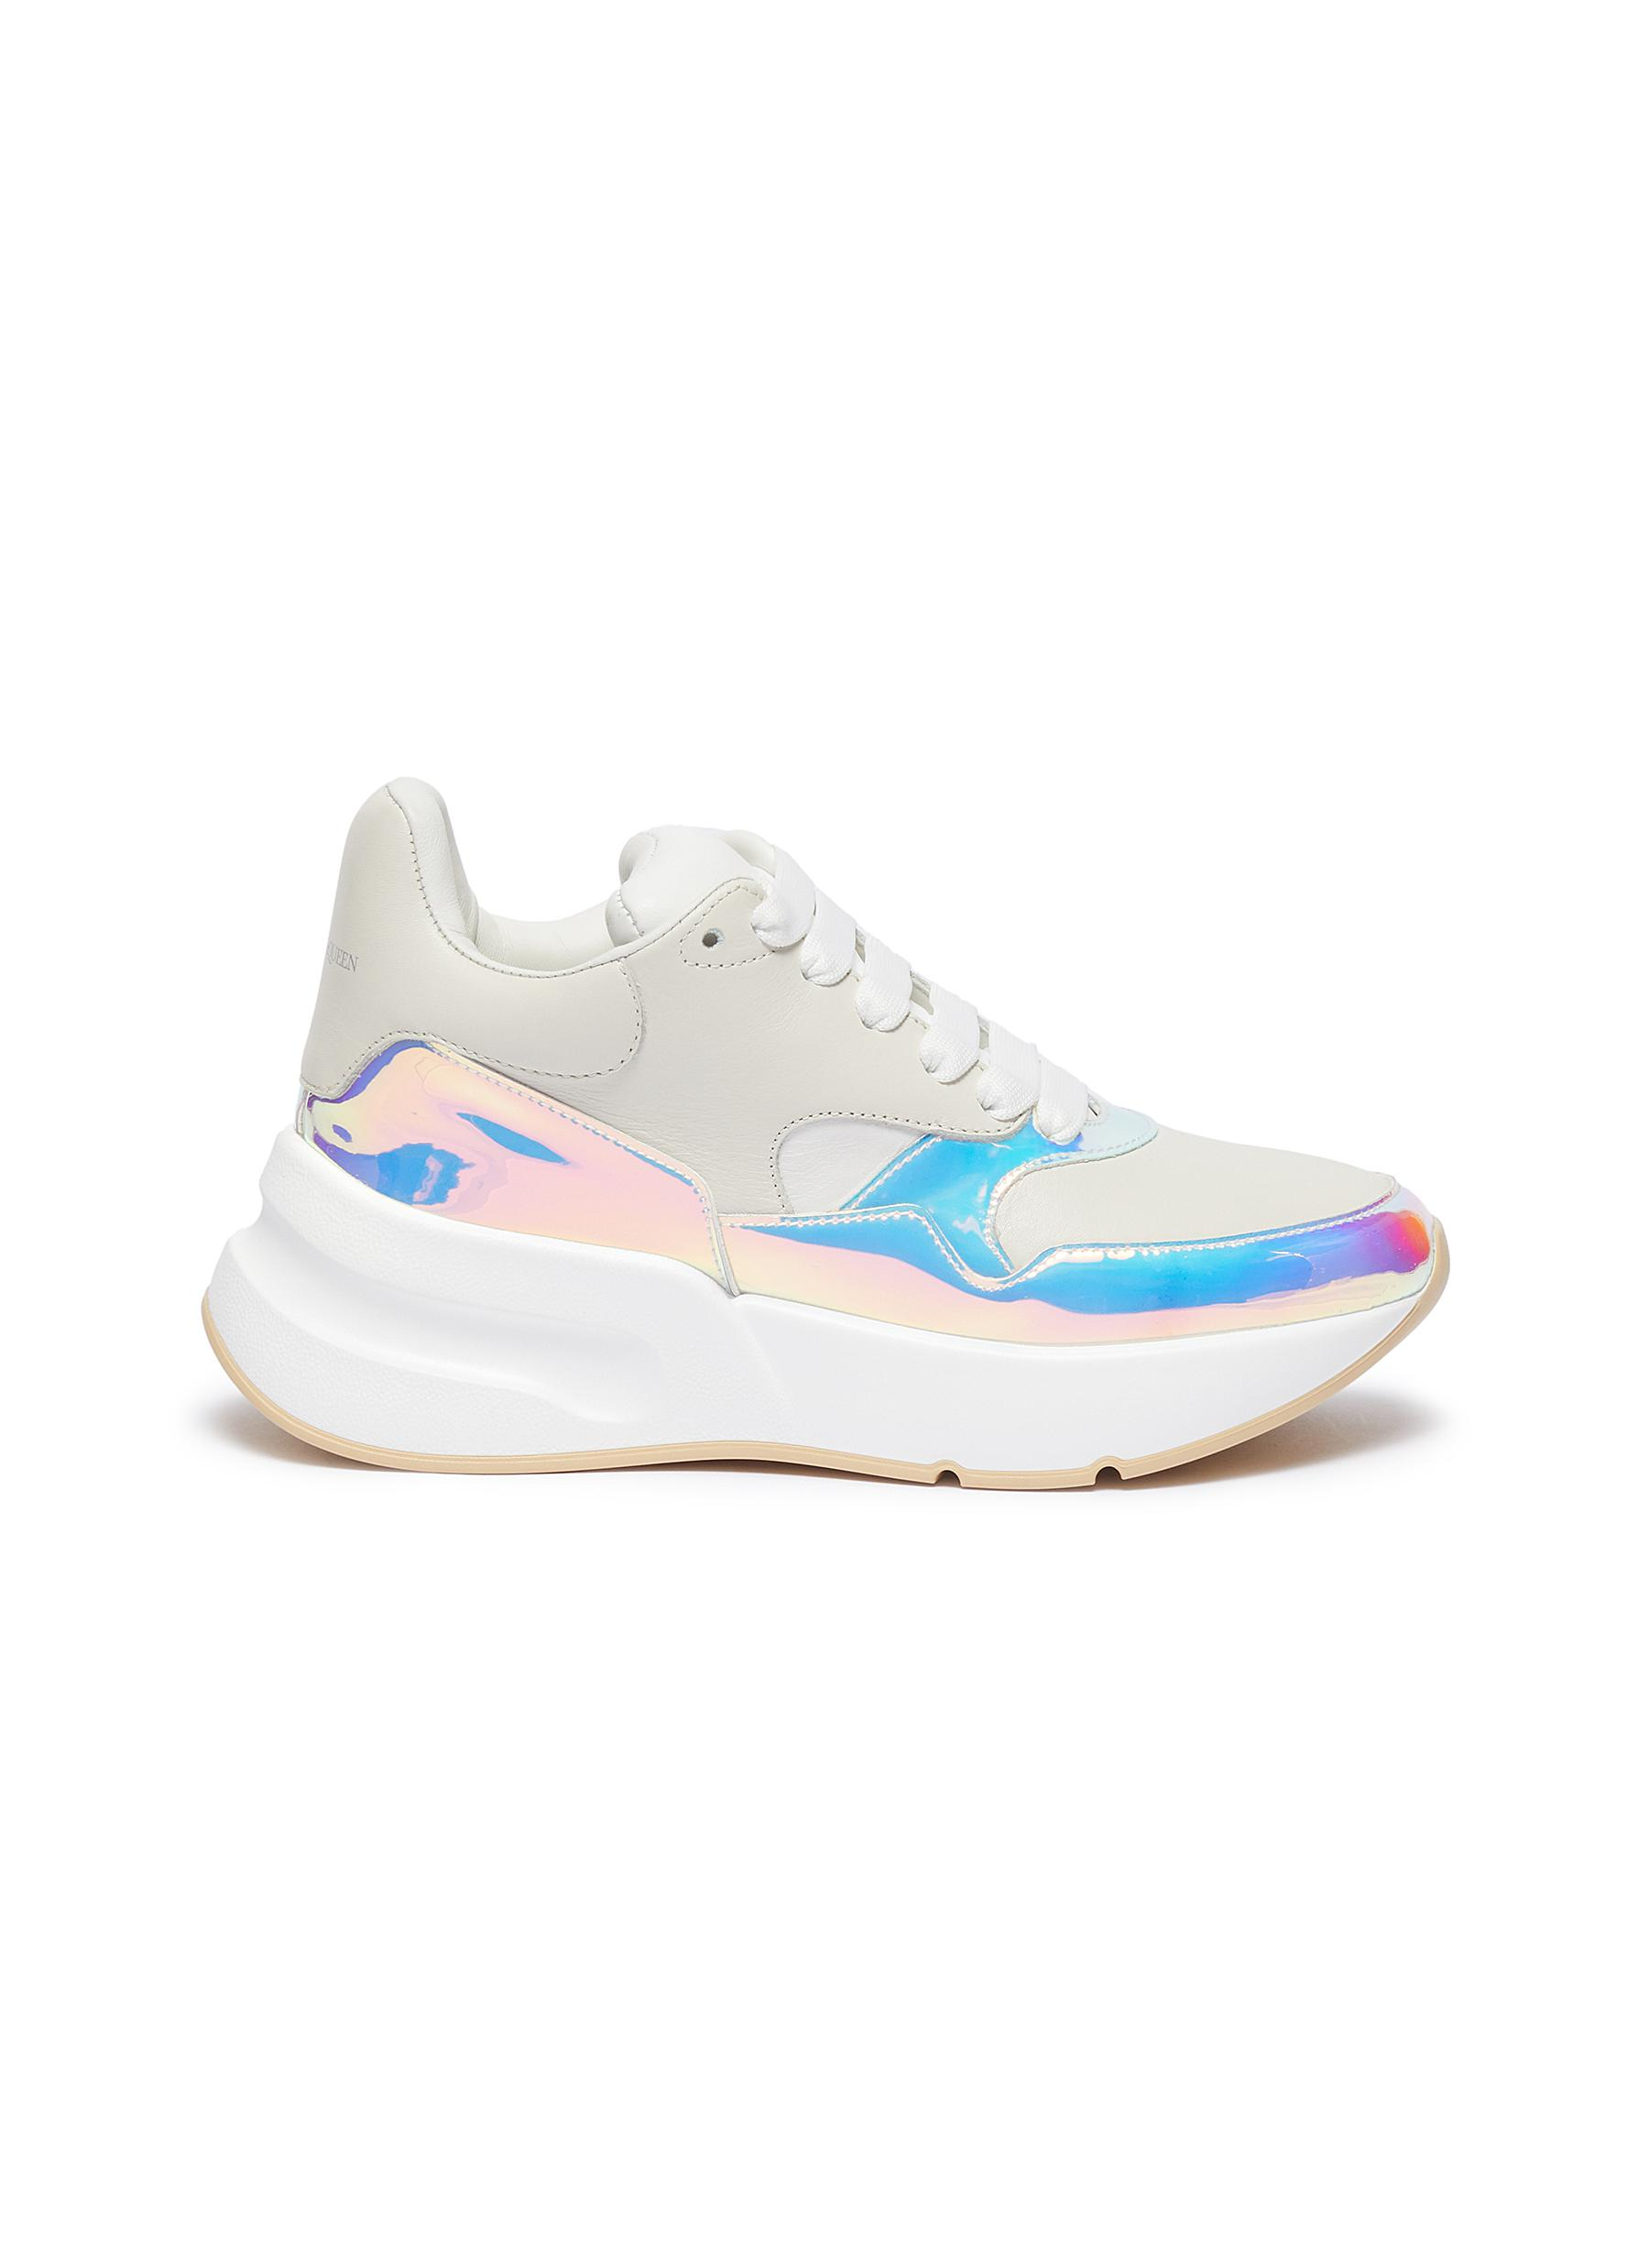 Oversized Runner in holographic panel leather by Alexander Mcqueen